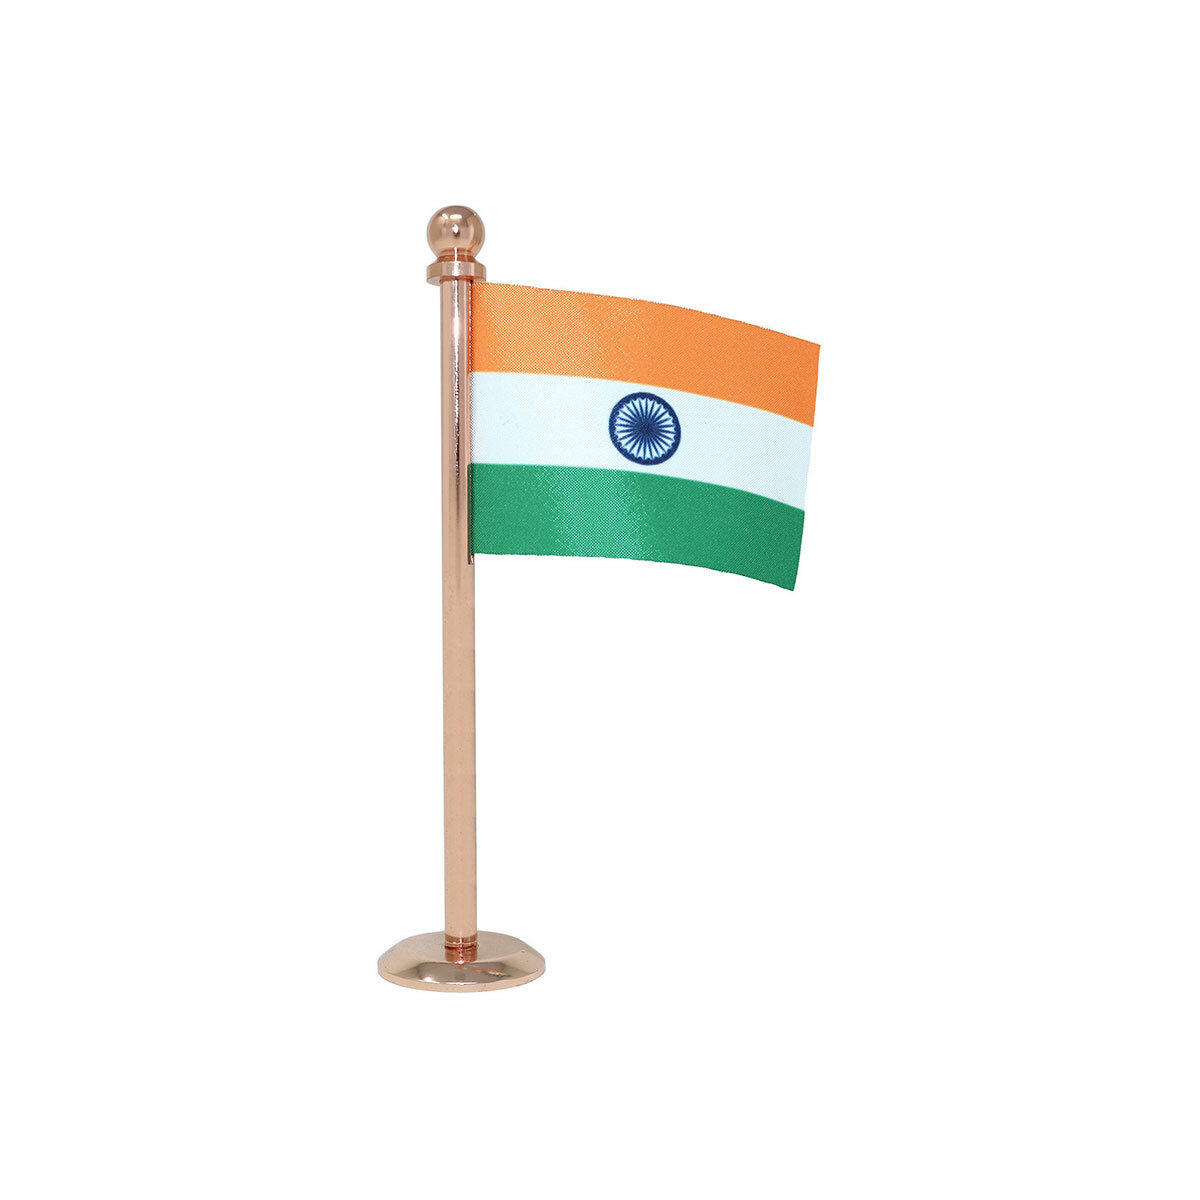 indian car dashboard flag with a rose gold plated steel stand / base